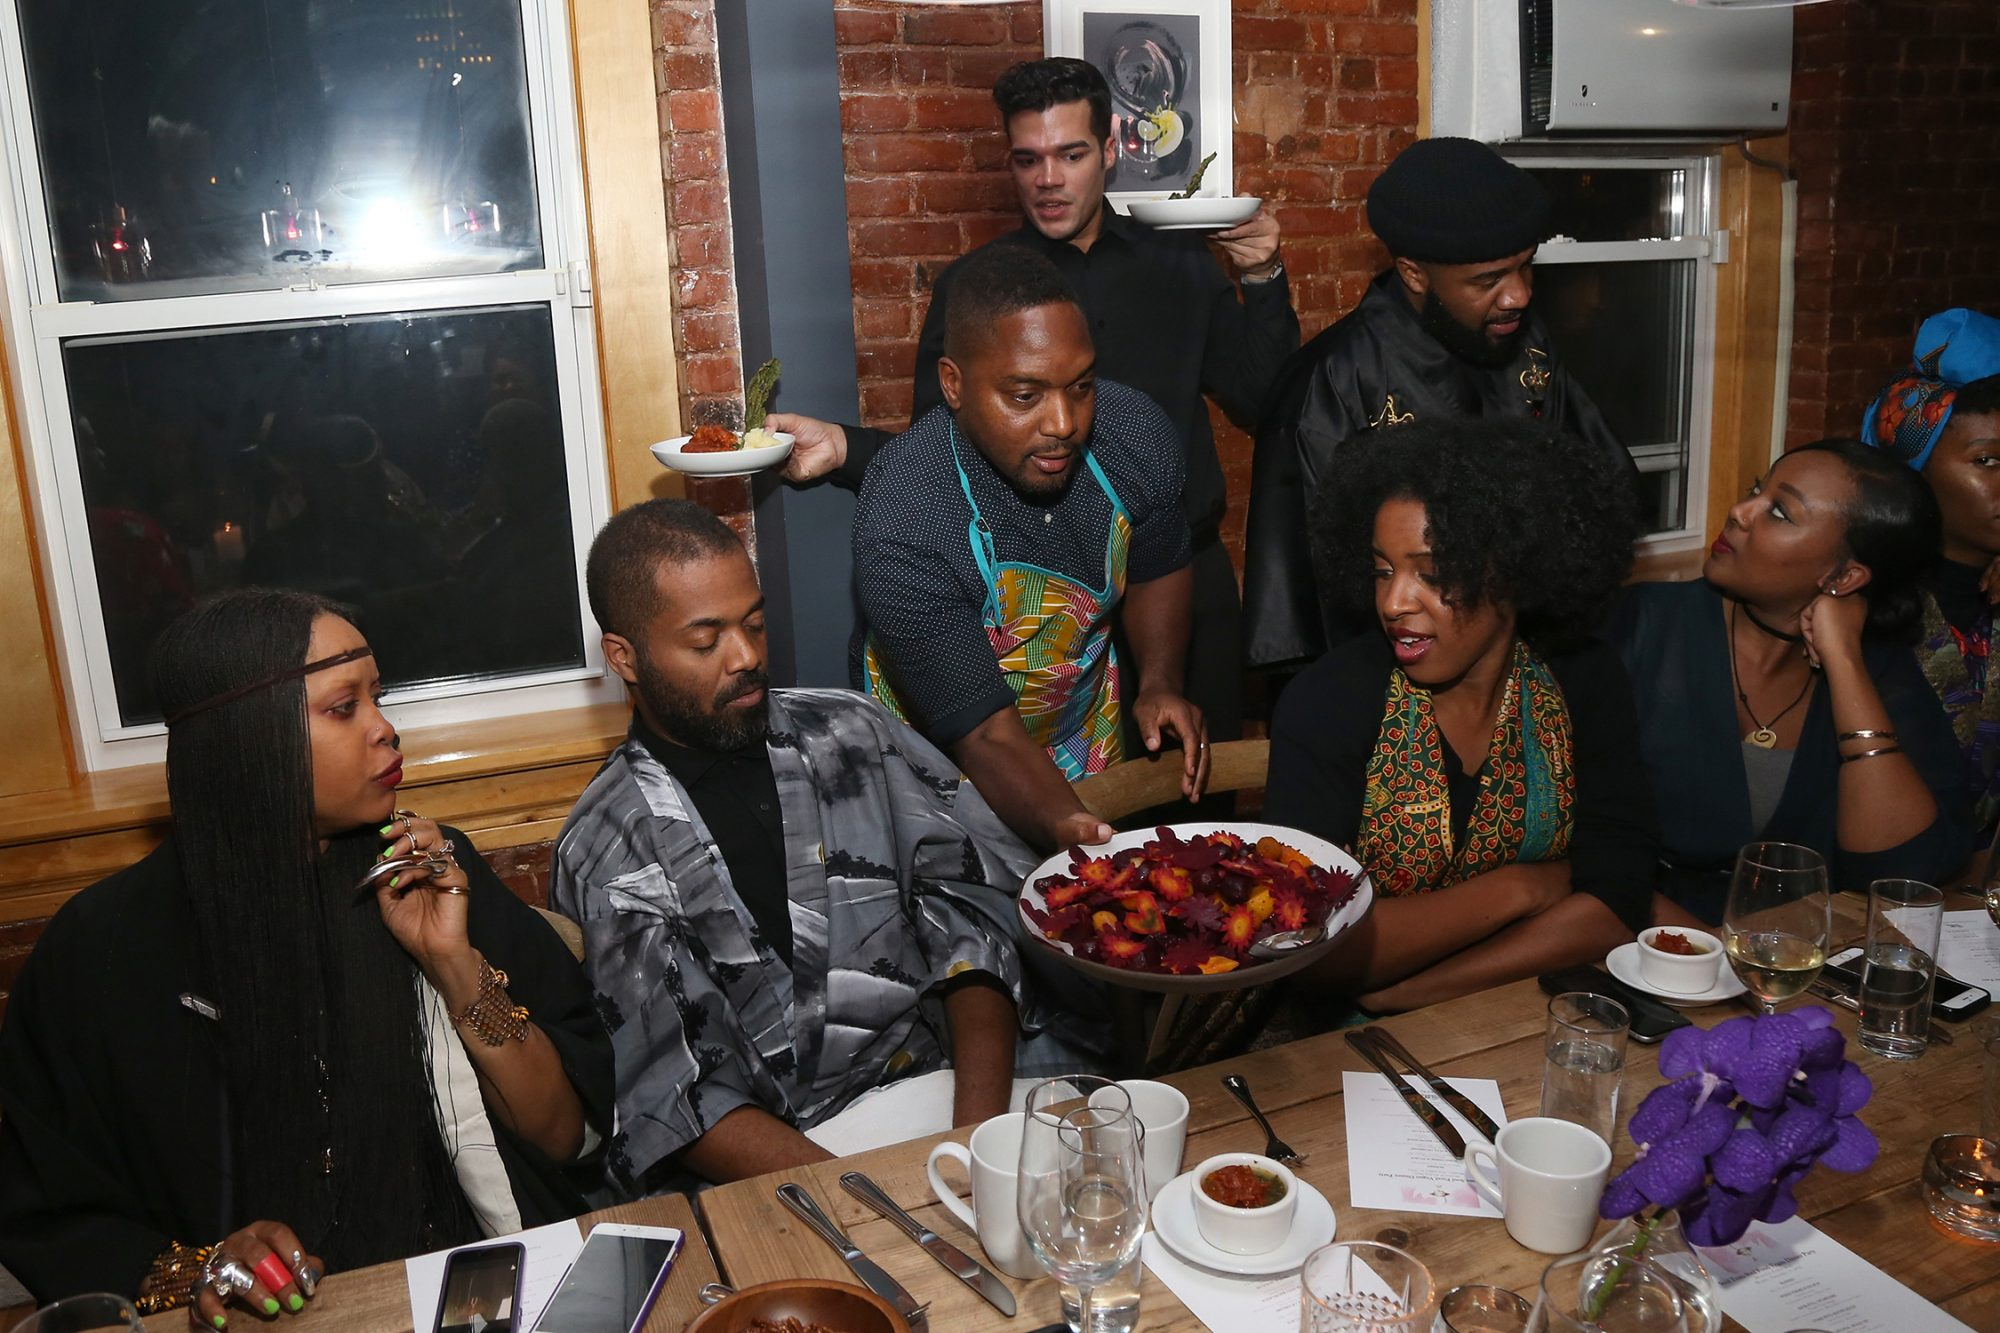 NEW YORK, NY - NOVEMBER 21: Chef Bryant Terry serves a dish during the Soul Train Soul Food Vegan Dinner Party on November 21, 2016 in New York City. (Photo by Bennett Raglin/Getty Images for BET)